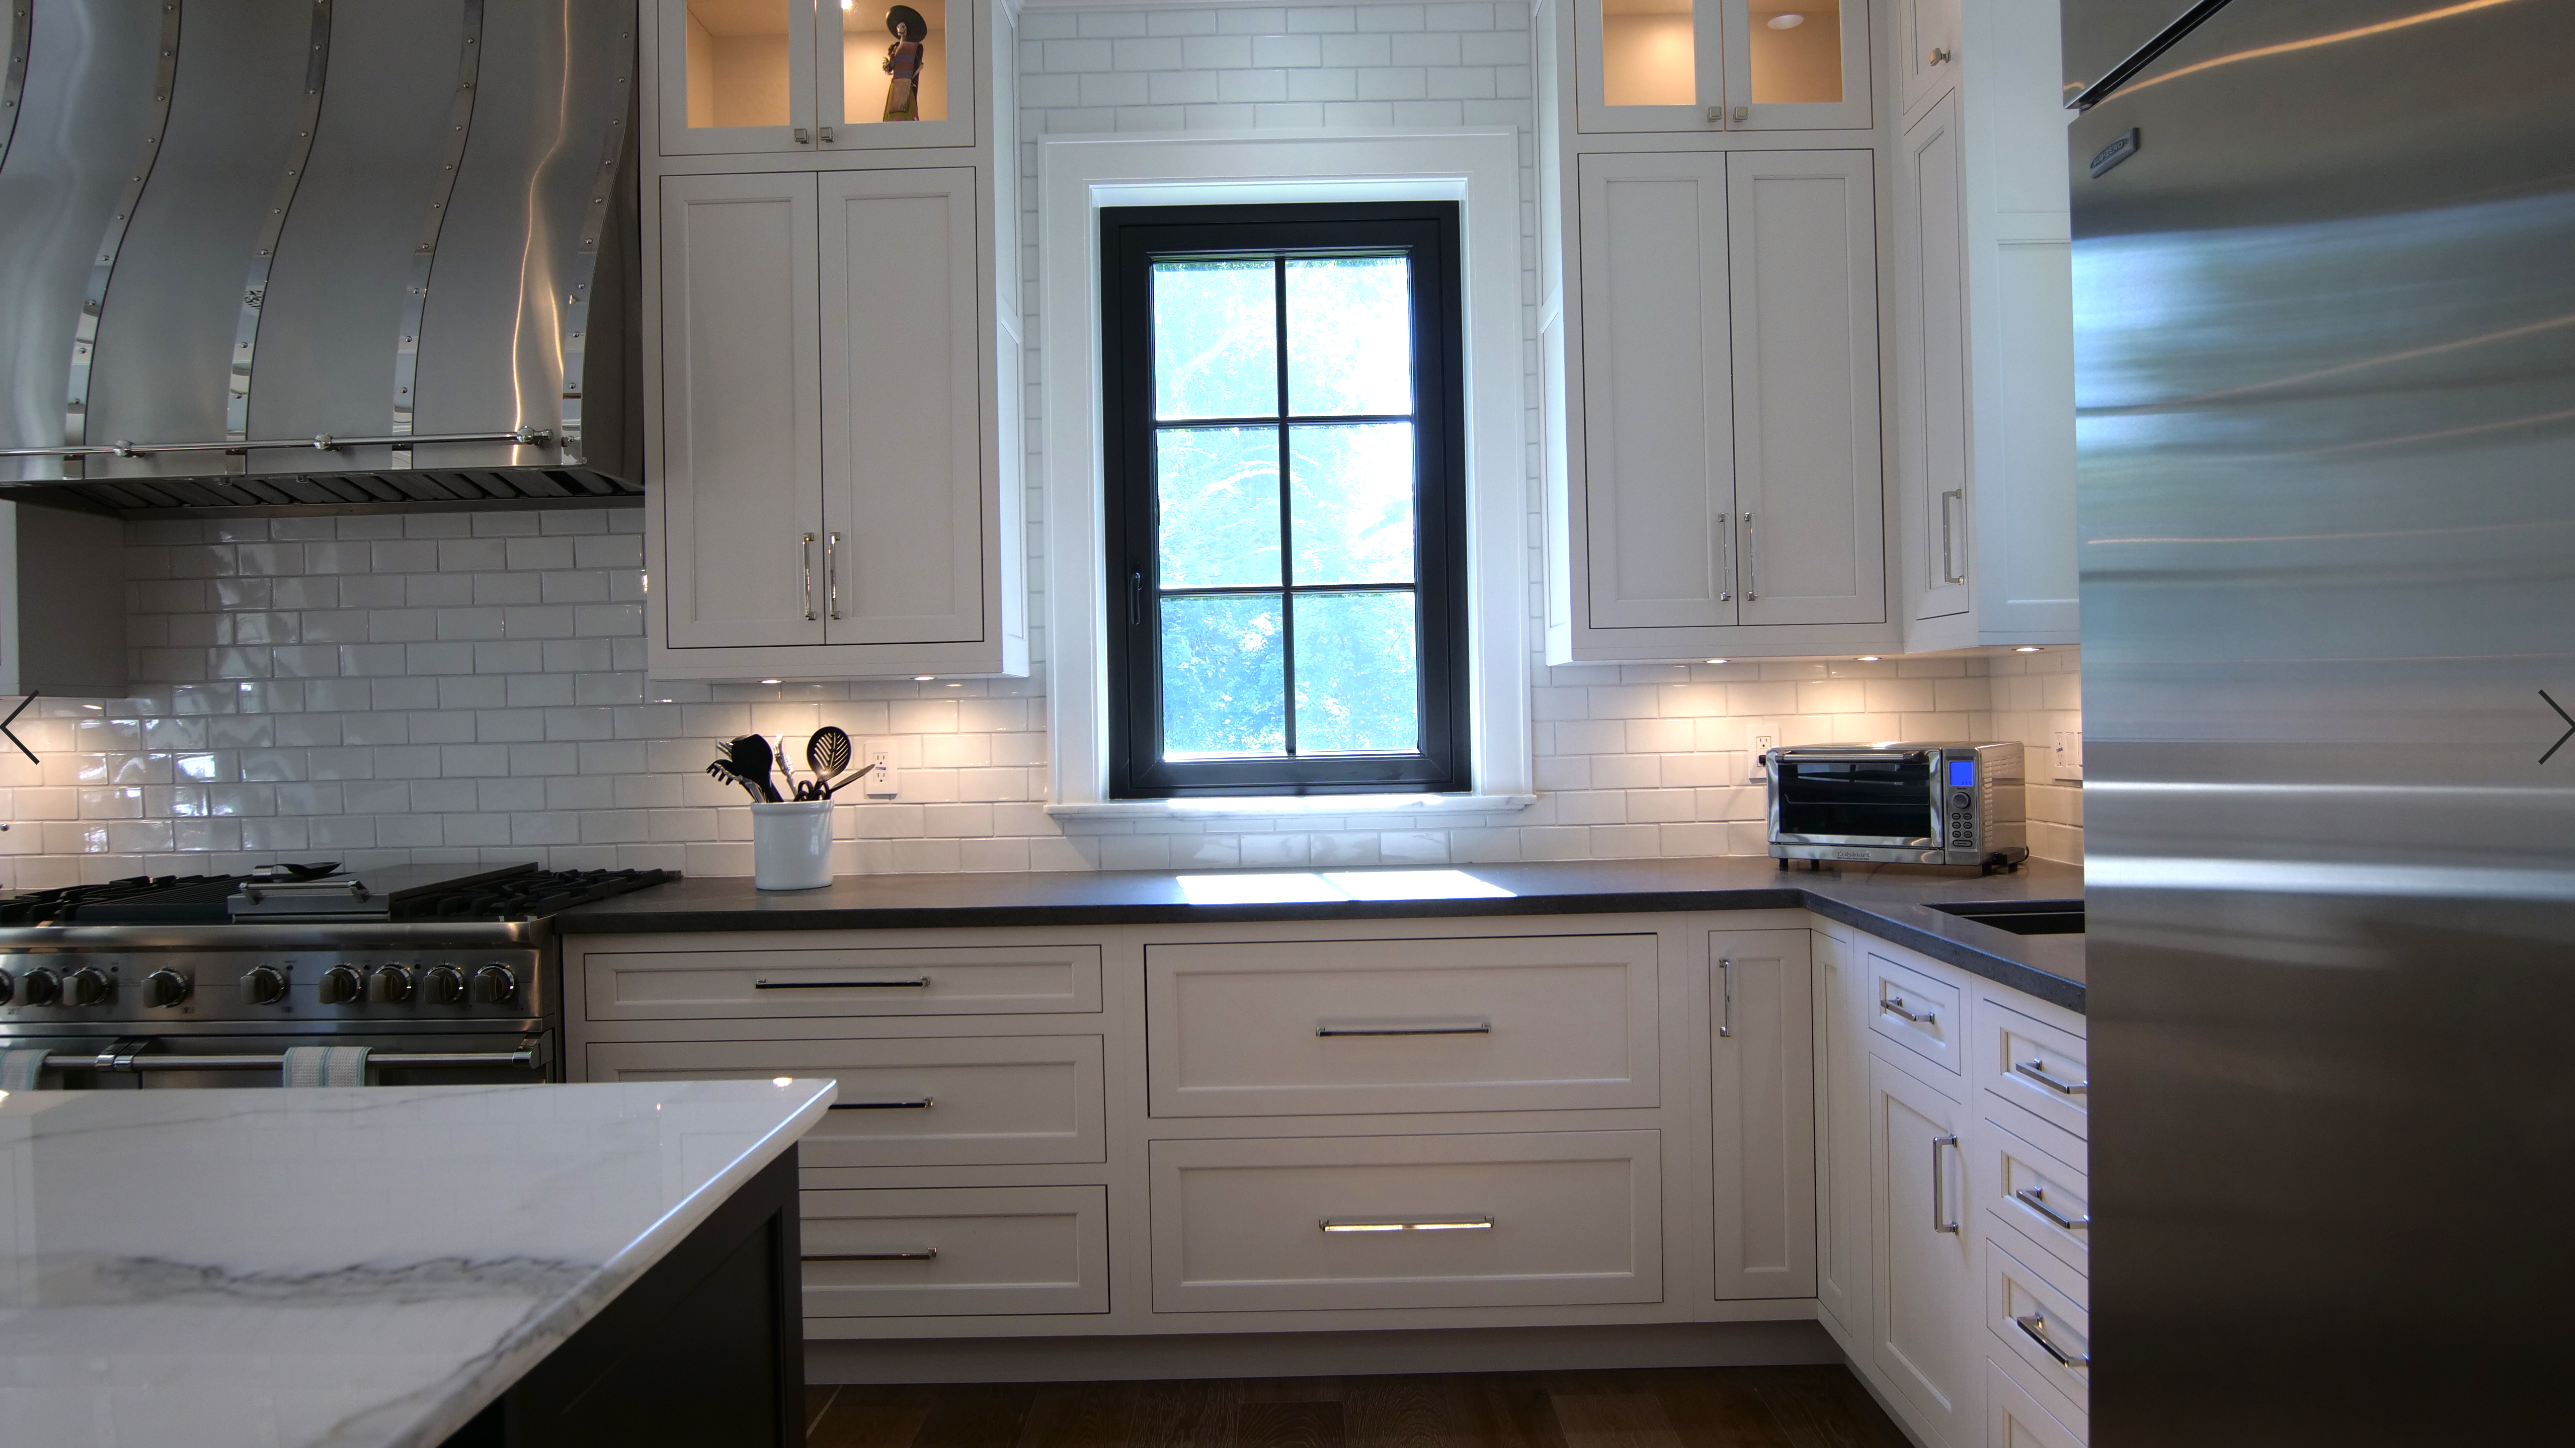 A Kitchen Of Dreams Call Us At 305 234 1990 In 2020 Home Decor Kitchen Decor